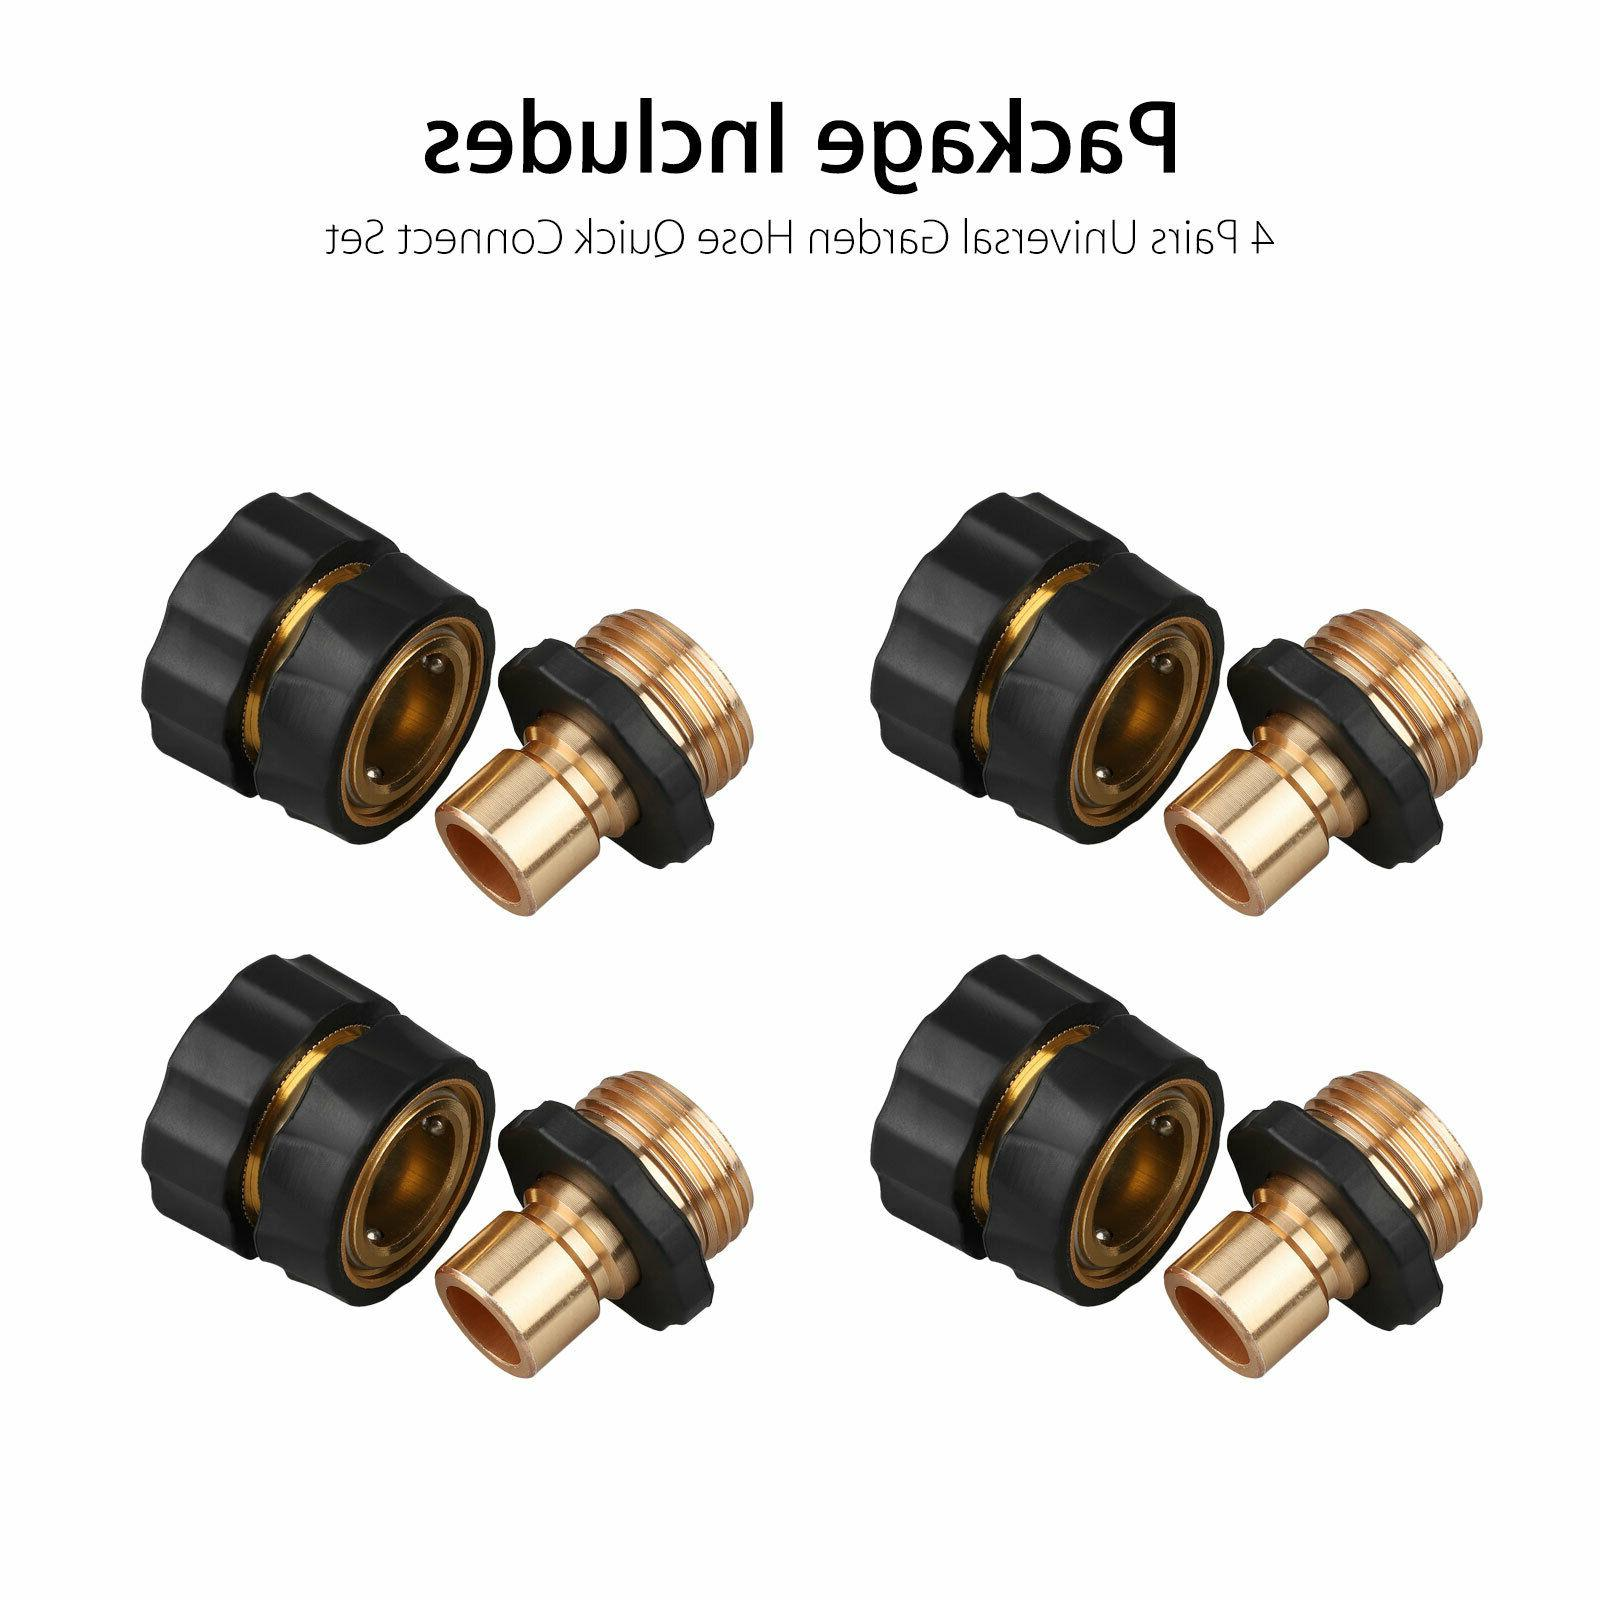 4 Hose Tap Quick Connect Set Pressure Washer Brass Connectors